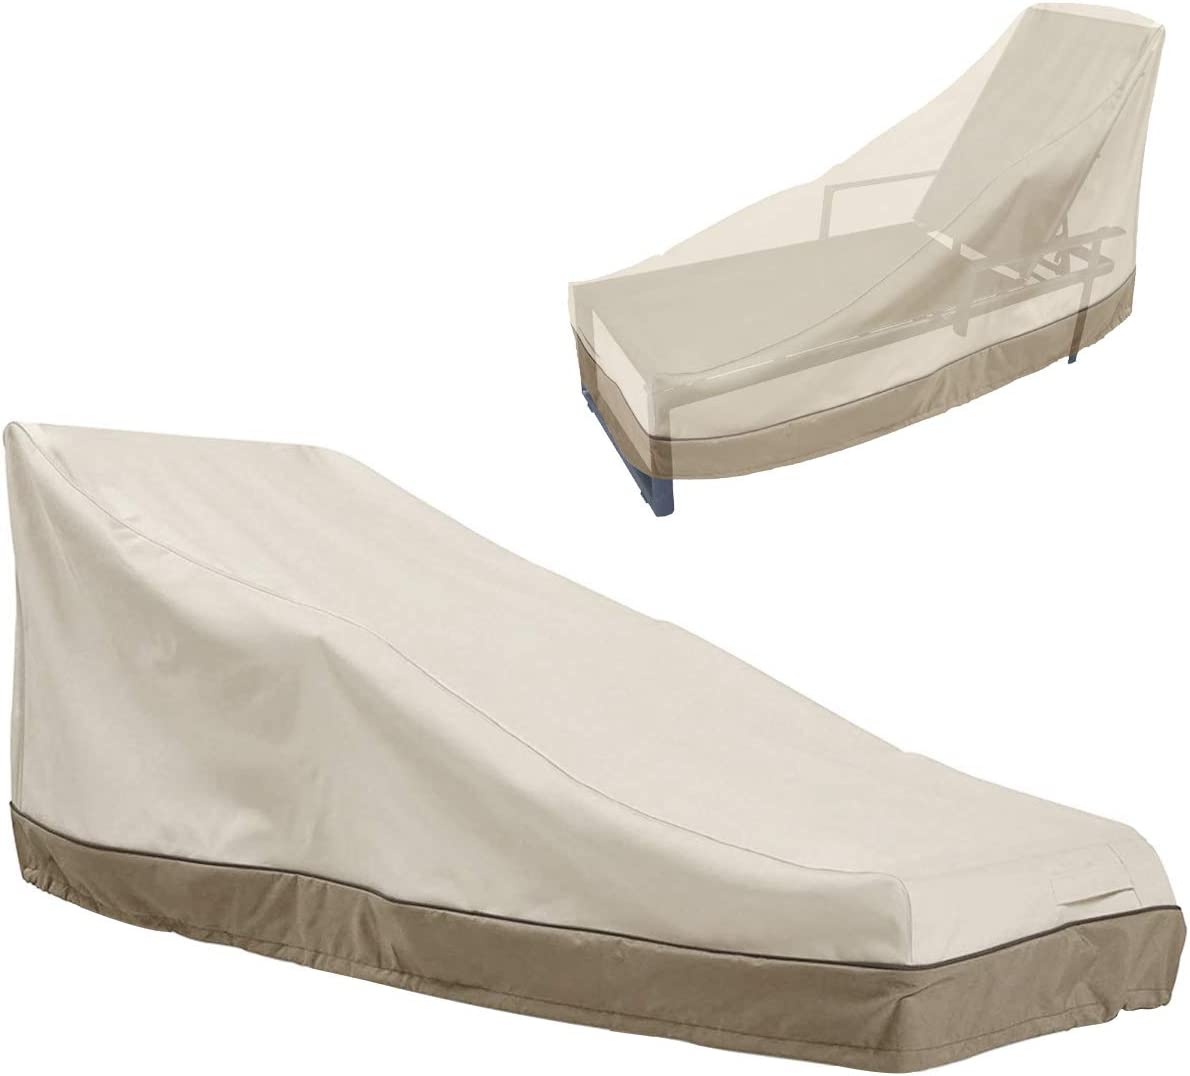 """ZAZA Waterproof Patio Chaise Lounge Cover, 600D Heavy Duty Outdoor Lounge Chair Covers,UV Resistant Patio Furniture Covers, Beige & Coffee (78"""" L x 35.5"""" W x 33"""" H)"""